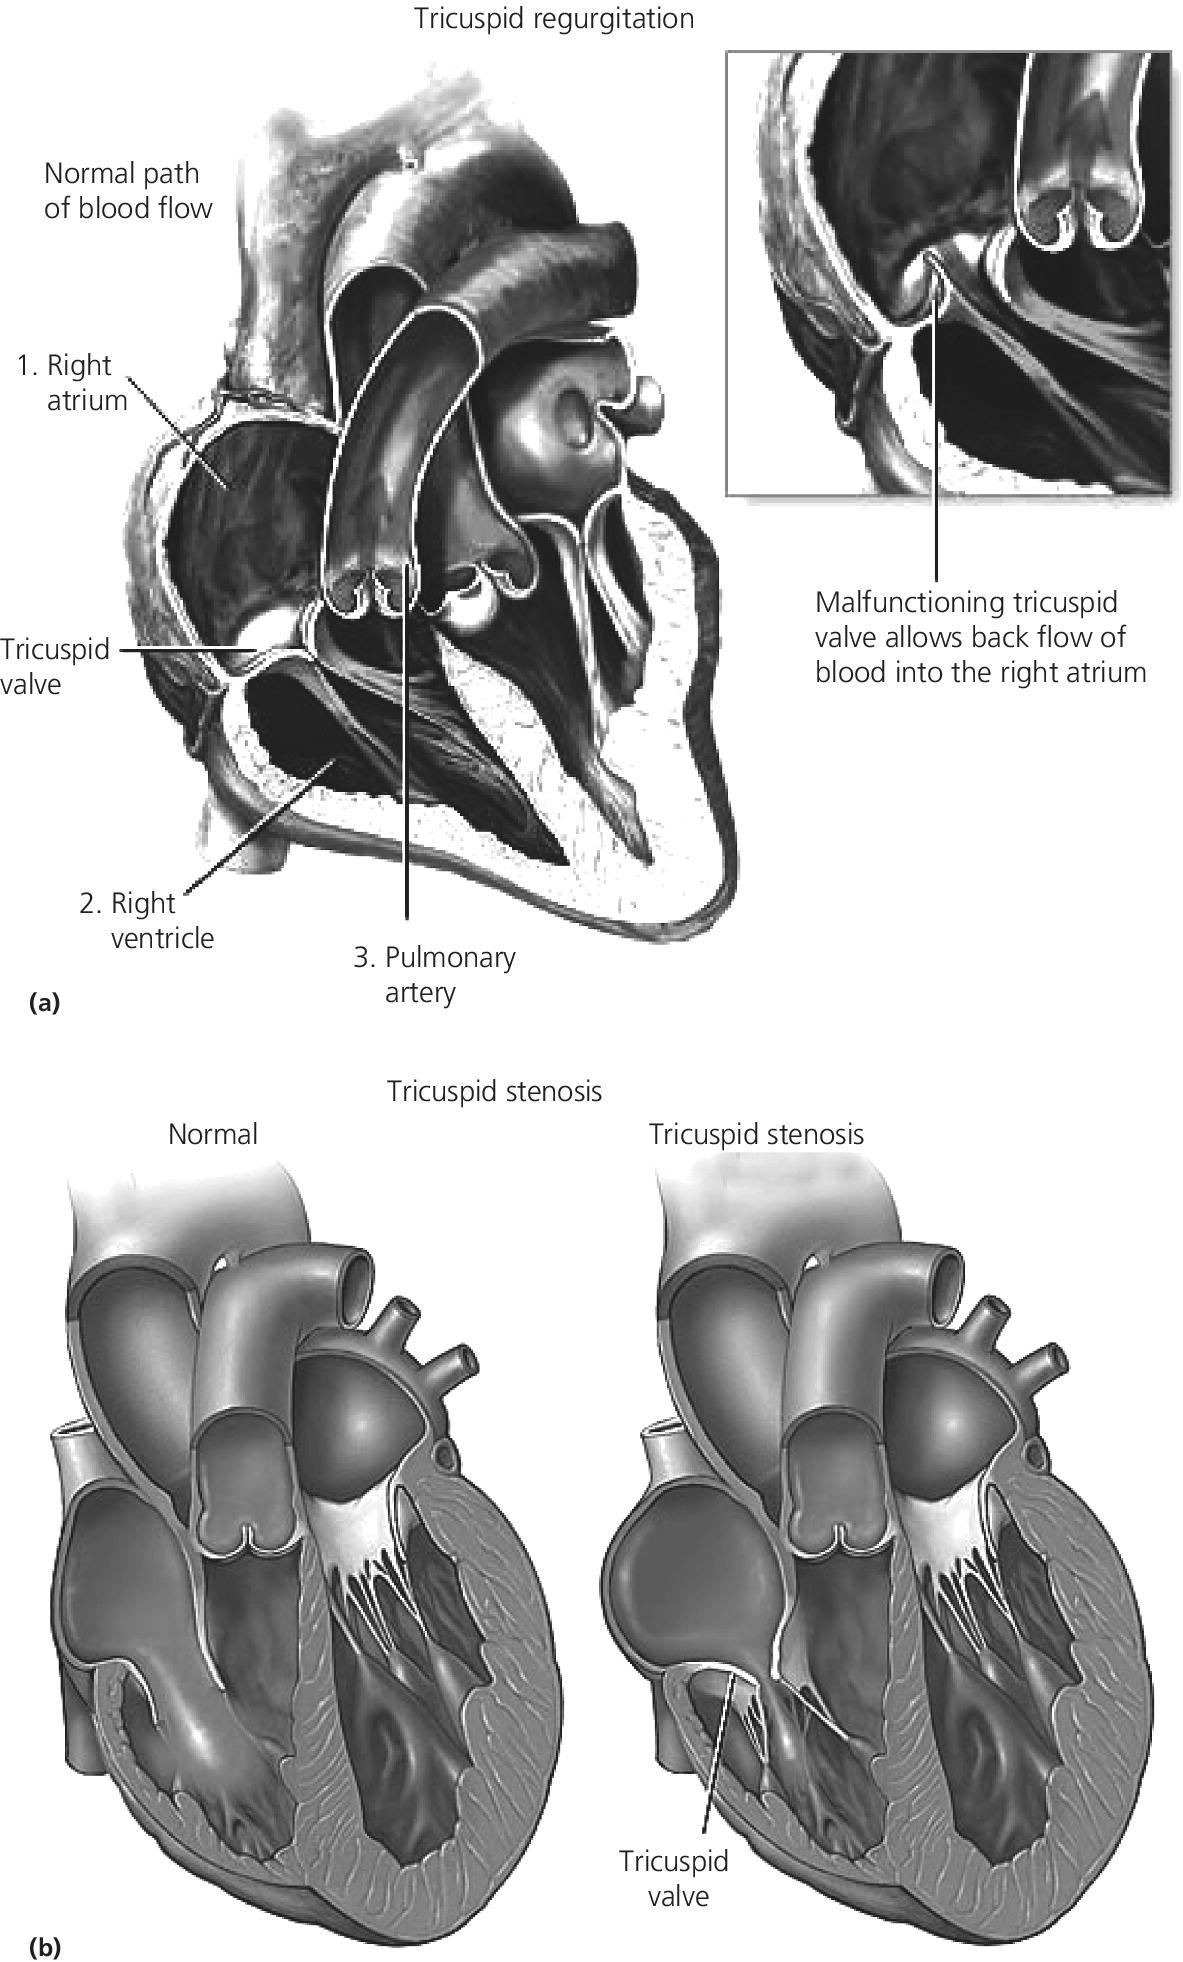 Top: Cross section of the heart with tricuspid regurgitation, with inset of the malfunctioning tricuspid valve. Bottom: Cross sections of the normal heart (left) and heart with tricuspid stenosis (right).